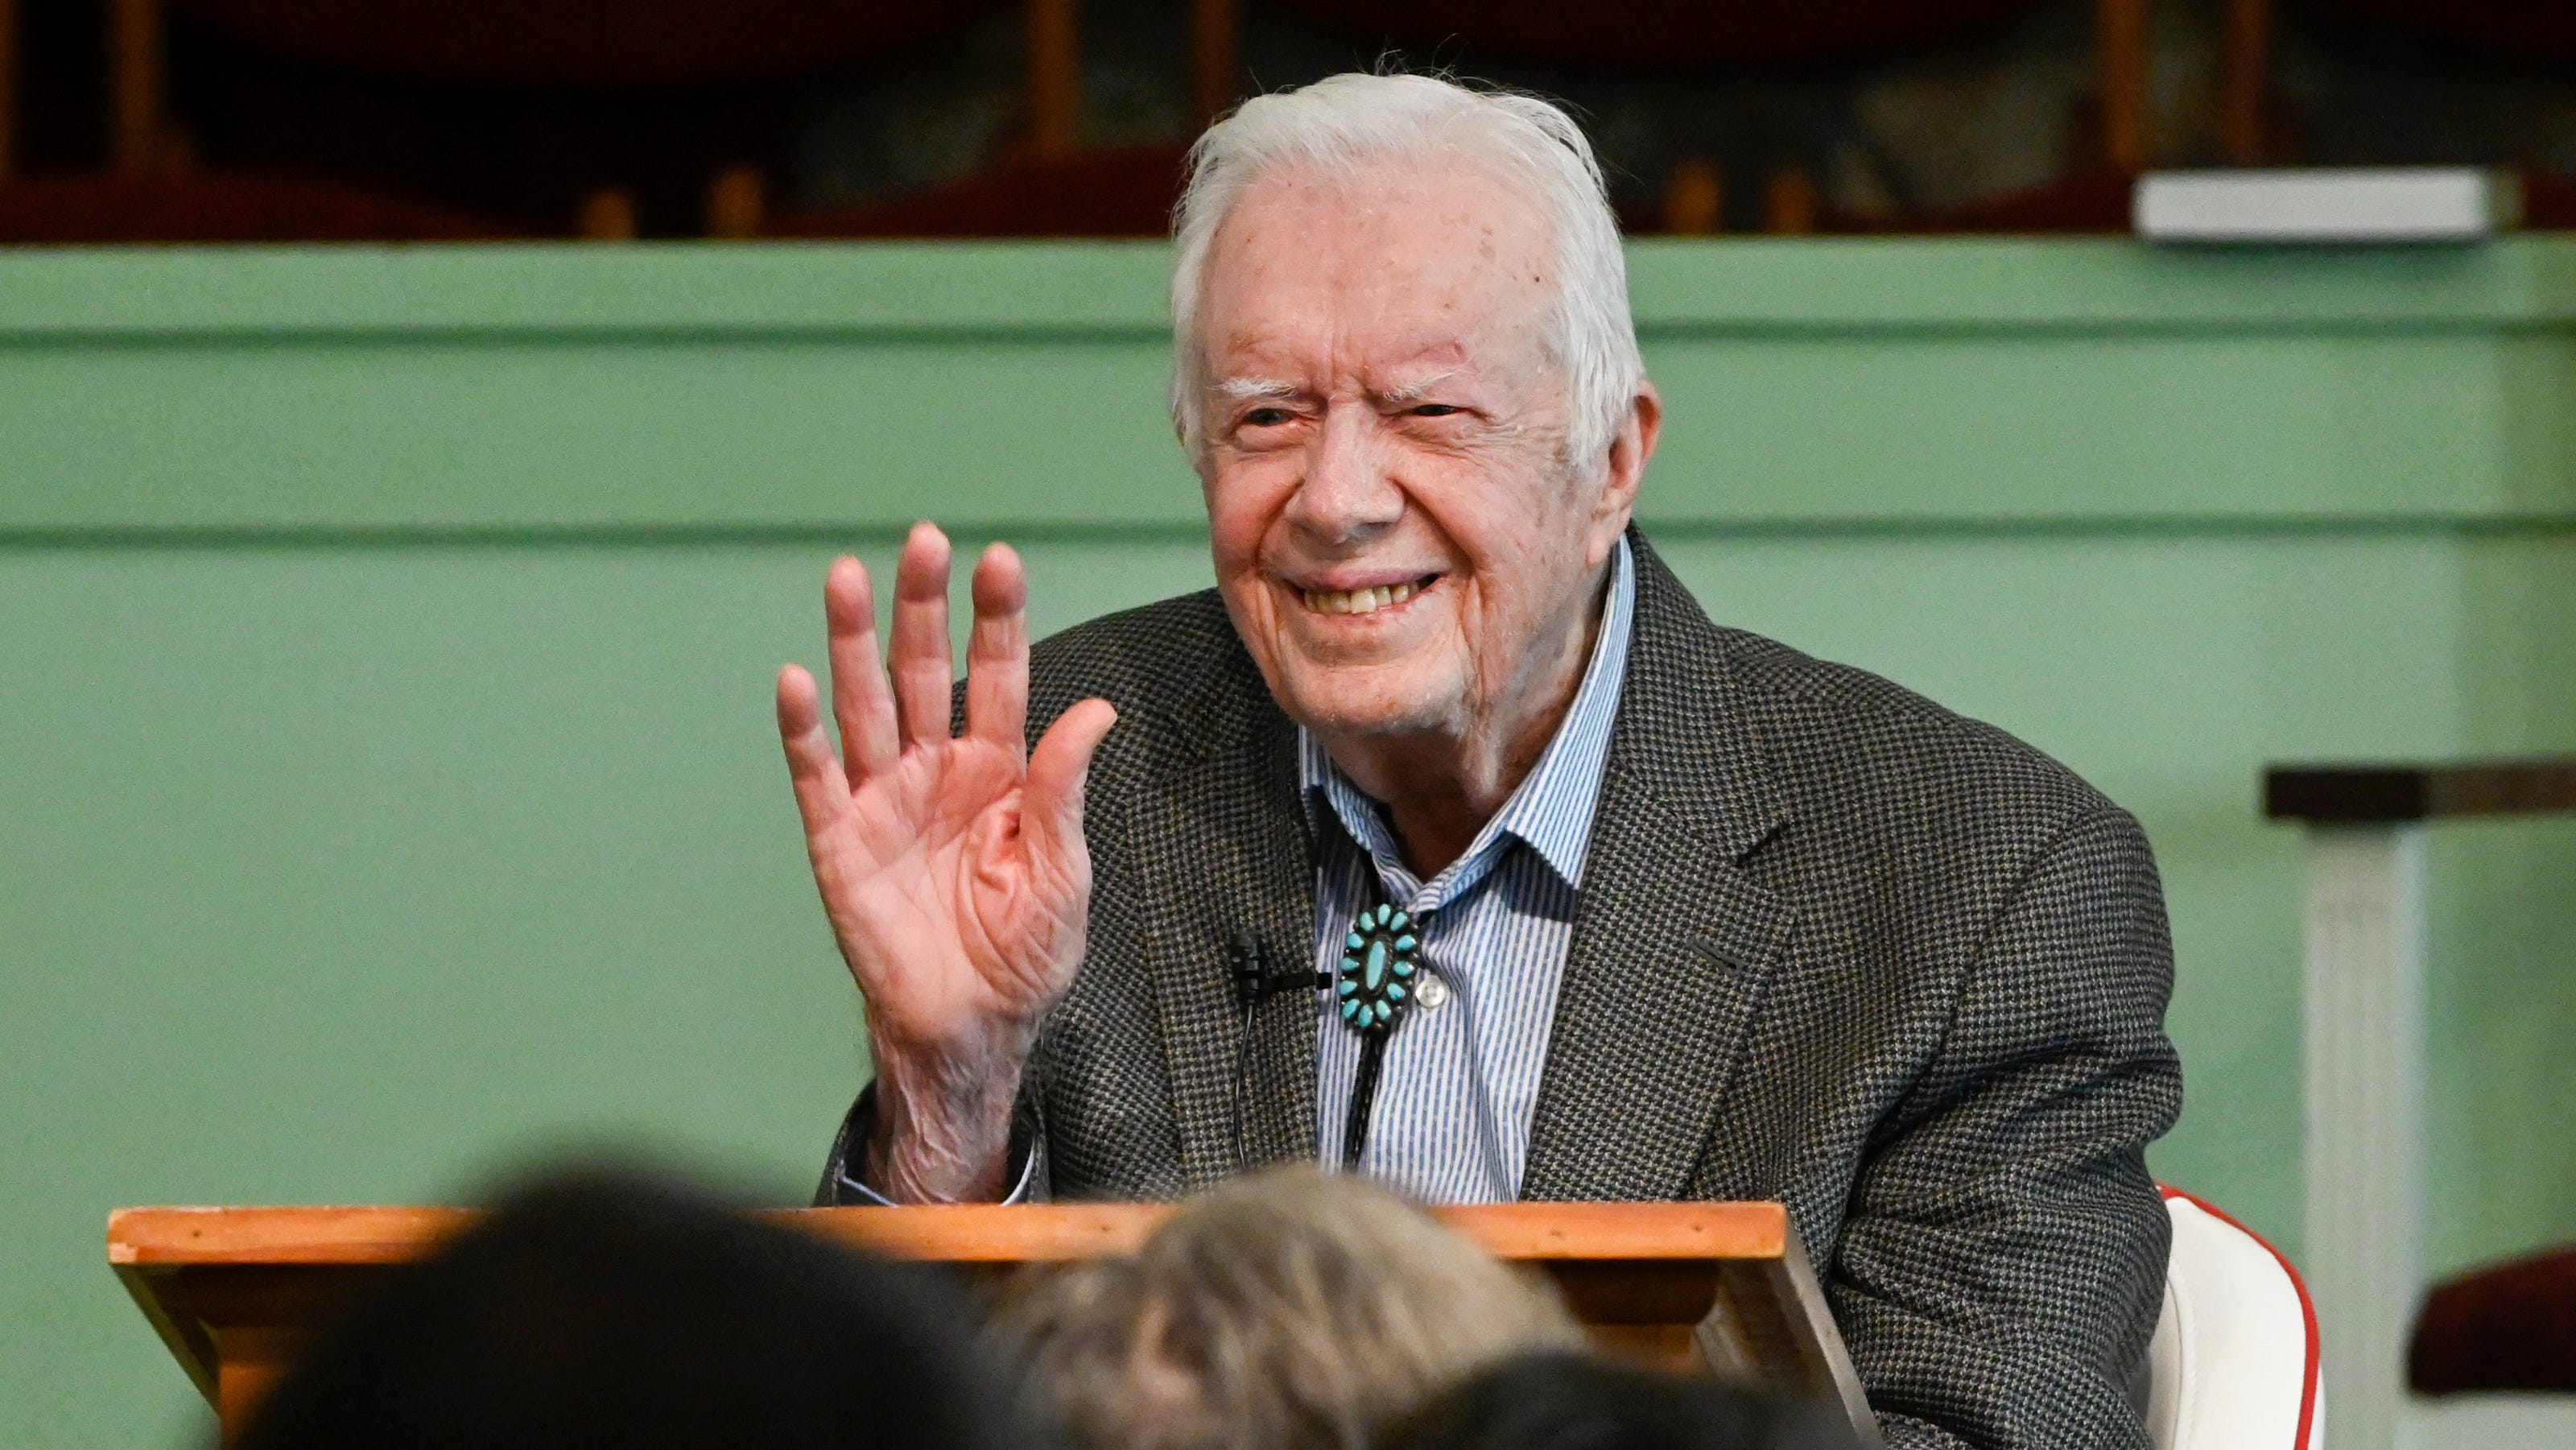 Jimmy Carter 95 Says Faith Makes Him Completely At Ease With Death